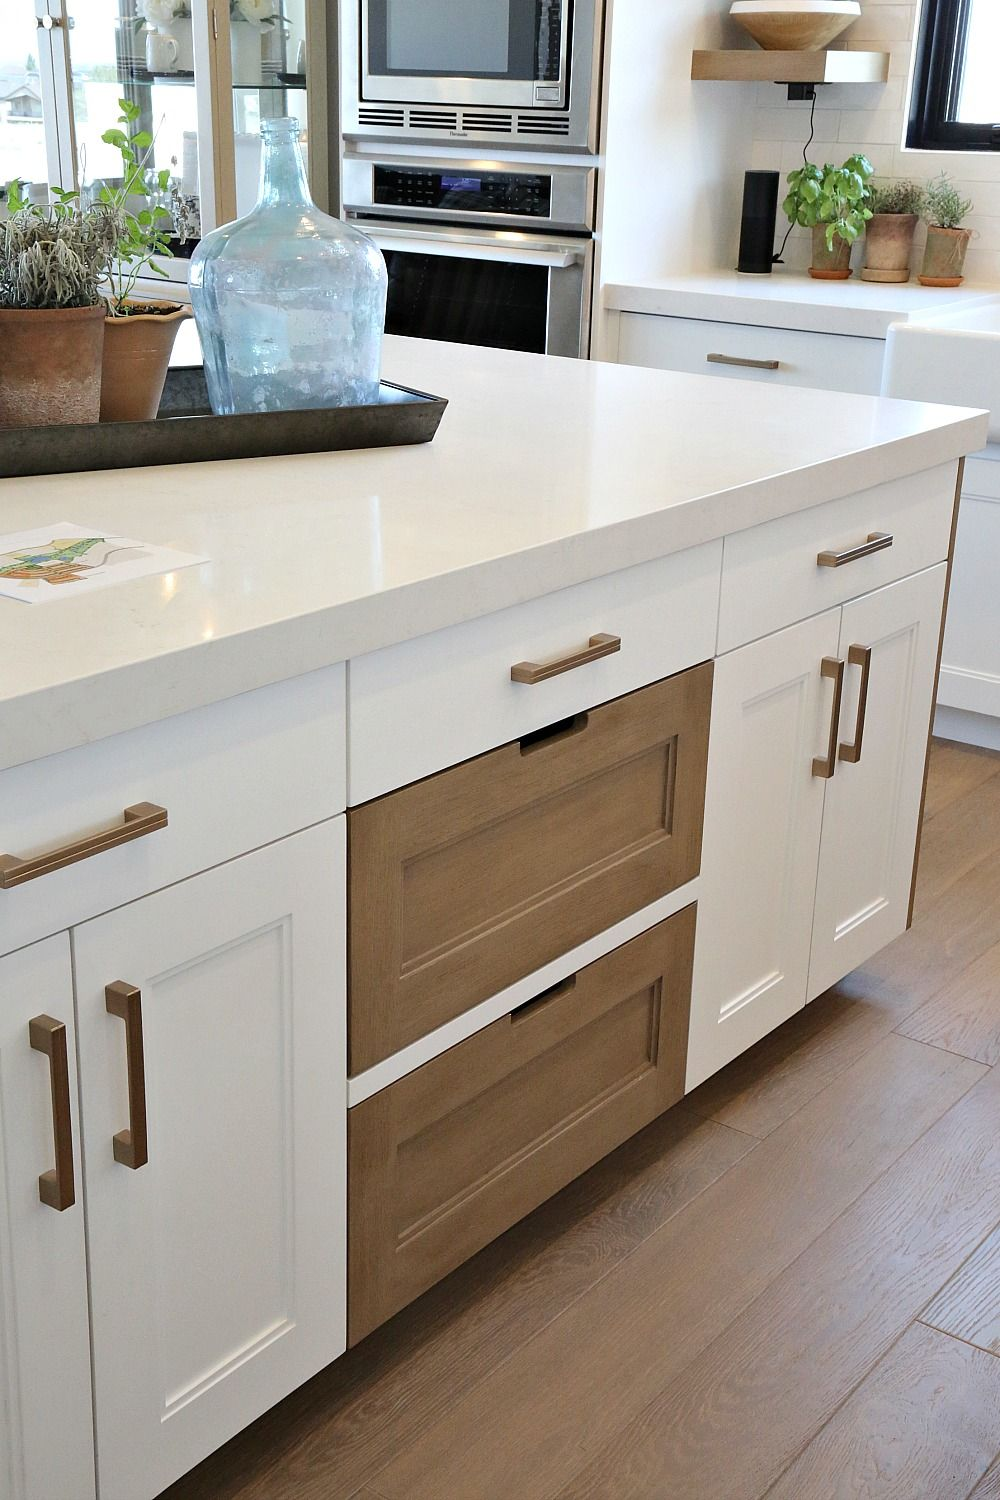 Our Best Tips for Staining Cabinets (or Re-Staining) | Oh My ...